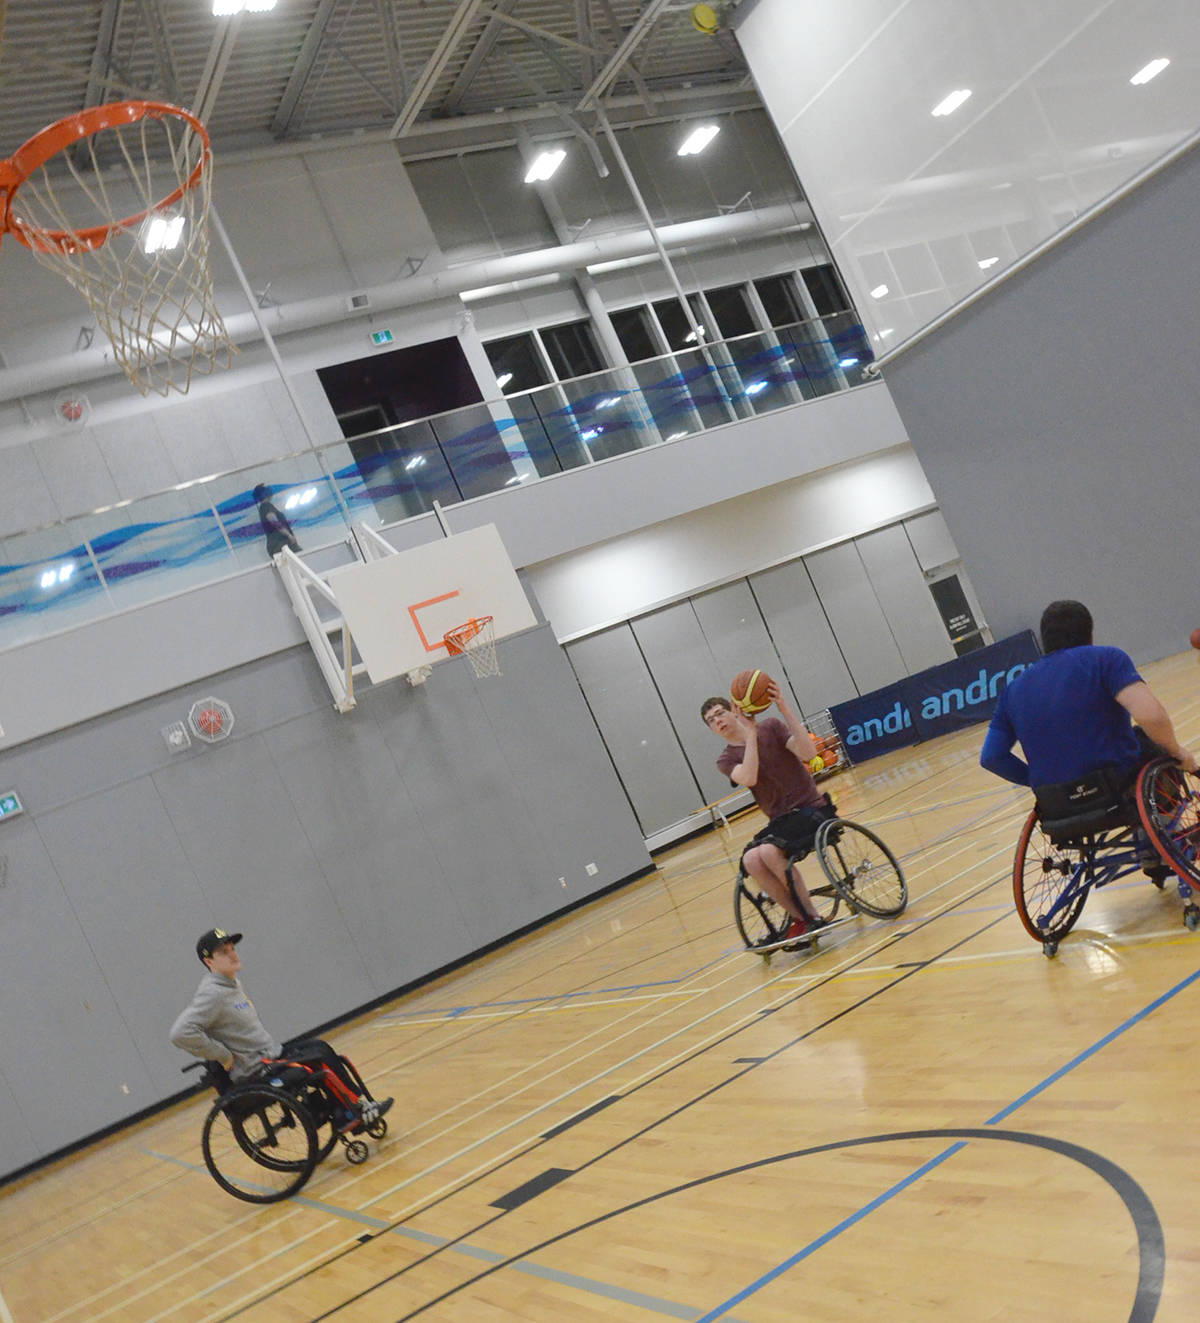 Matthew Norris, Joel Aukema and Ben Garrett were at the Timms Community Centre for their weekly basketball evening on Dec. 5. Langley is one of only a few Lower Mainland communities with wheelchair basketball. (Heather Colpitts/Langley Advance Times)